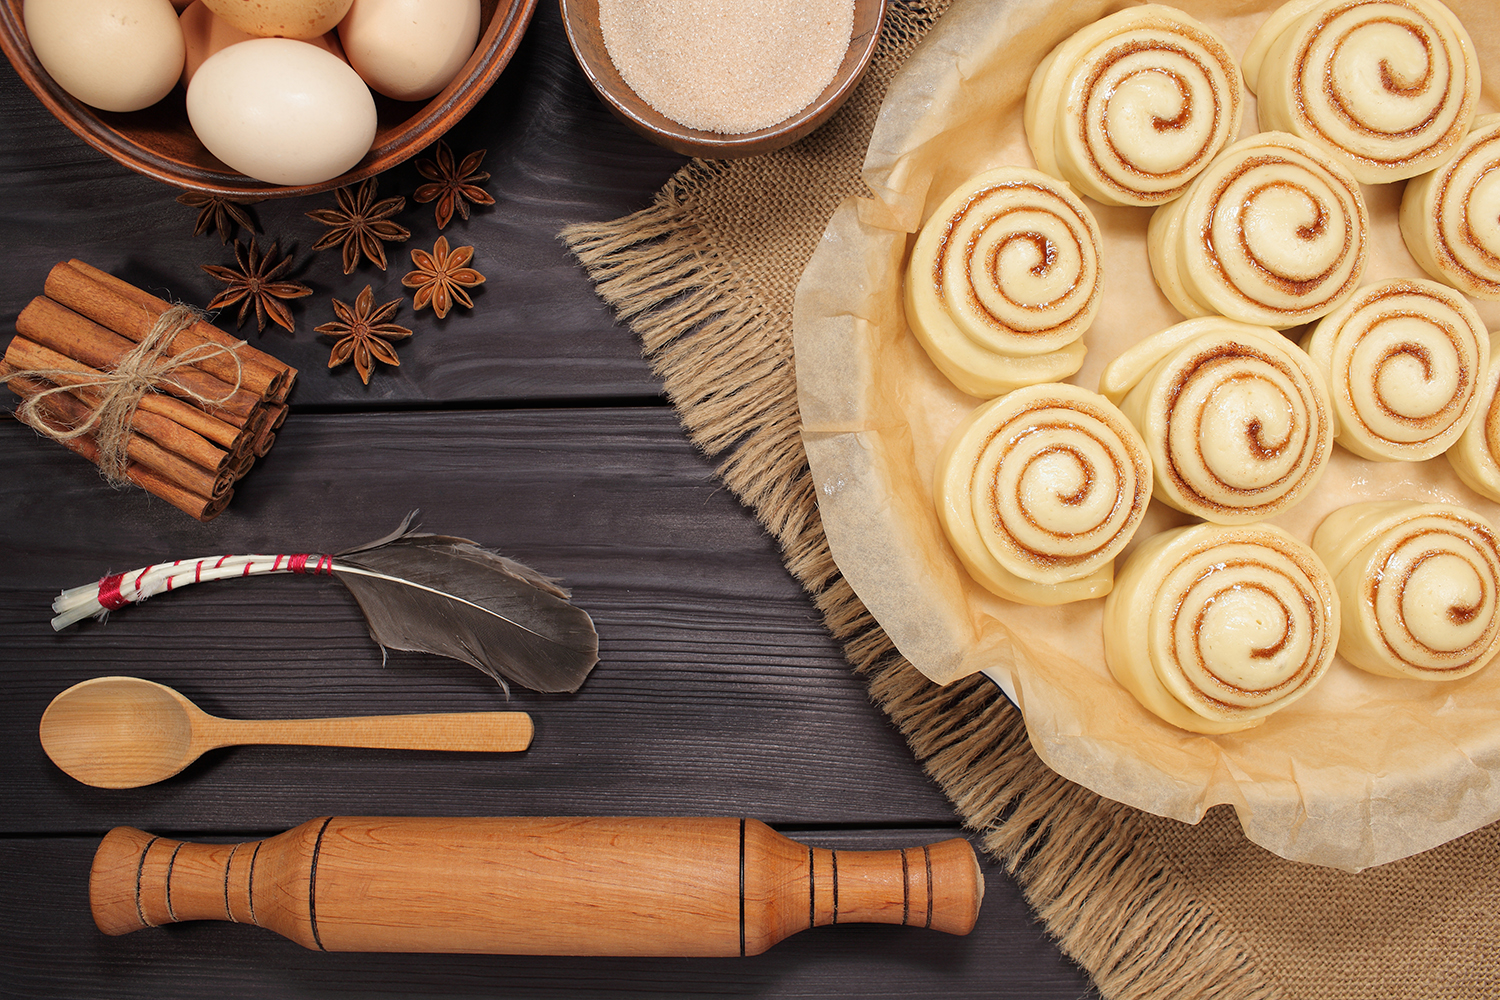 Set of 11 photos - raw buns: cinnamon rolls prepared for baking on a background of rustic table example image 3